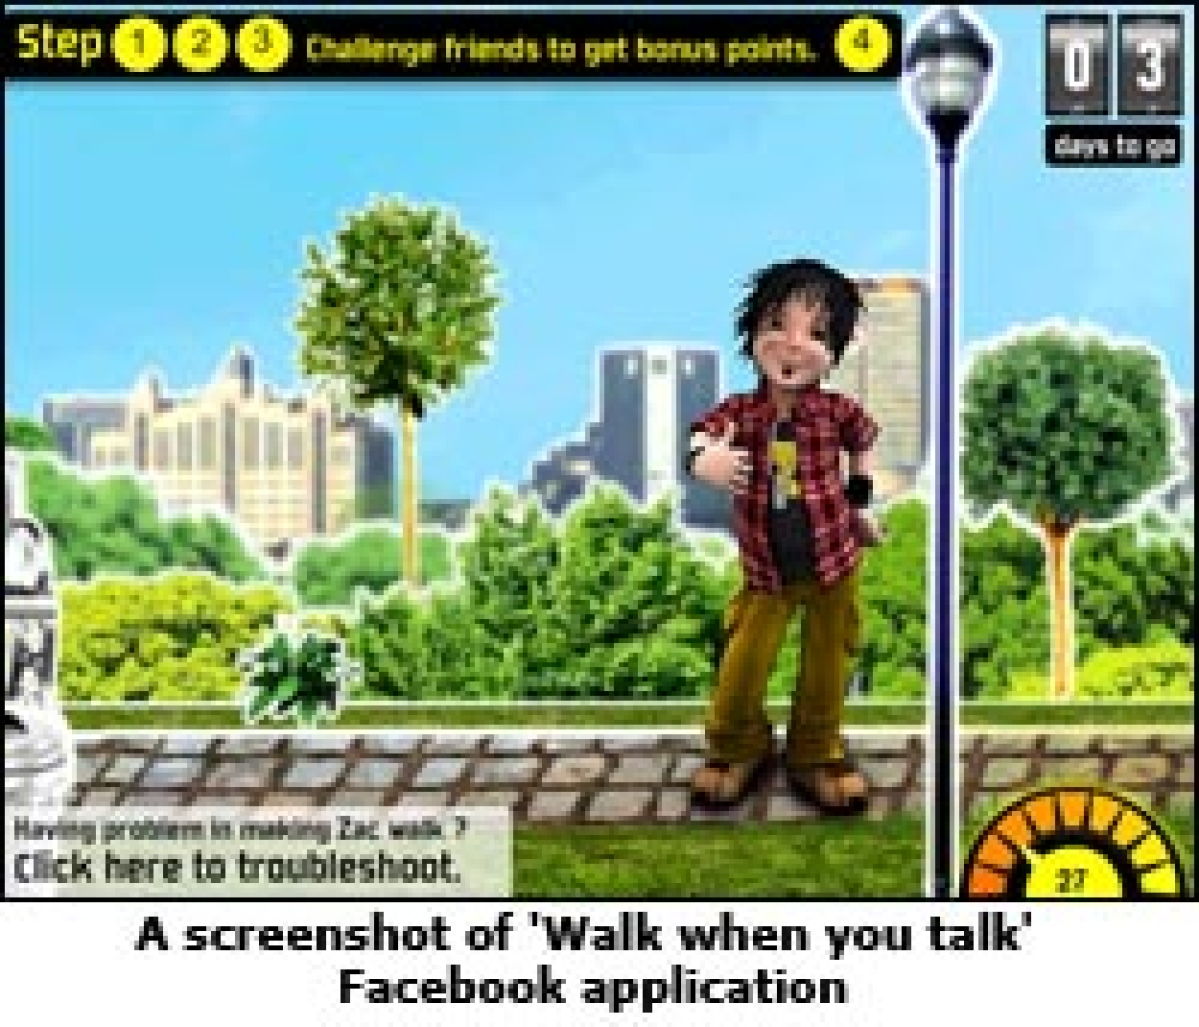 Idea Cellular lets you experience 'Walk when you talk' online